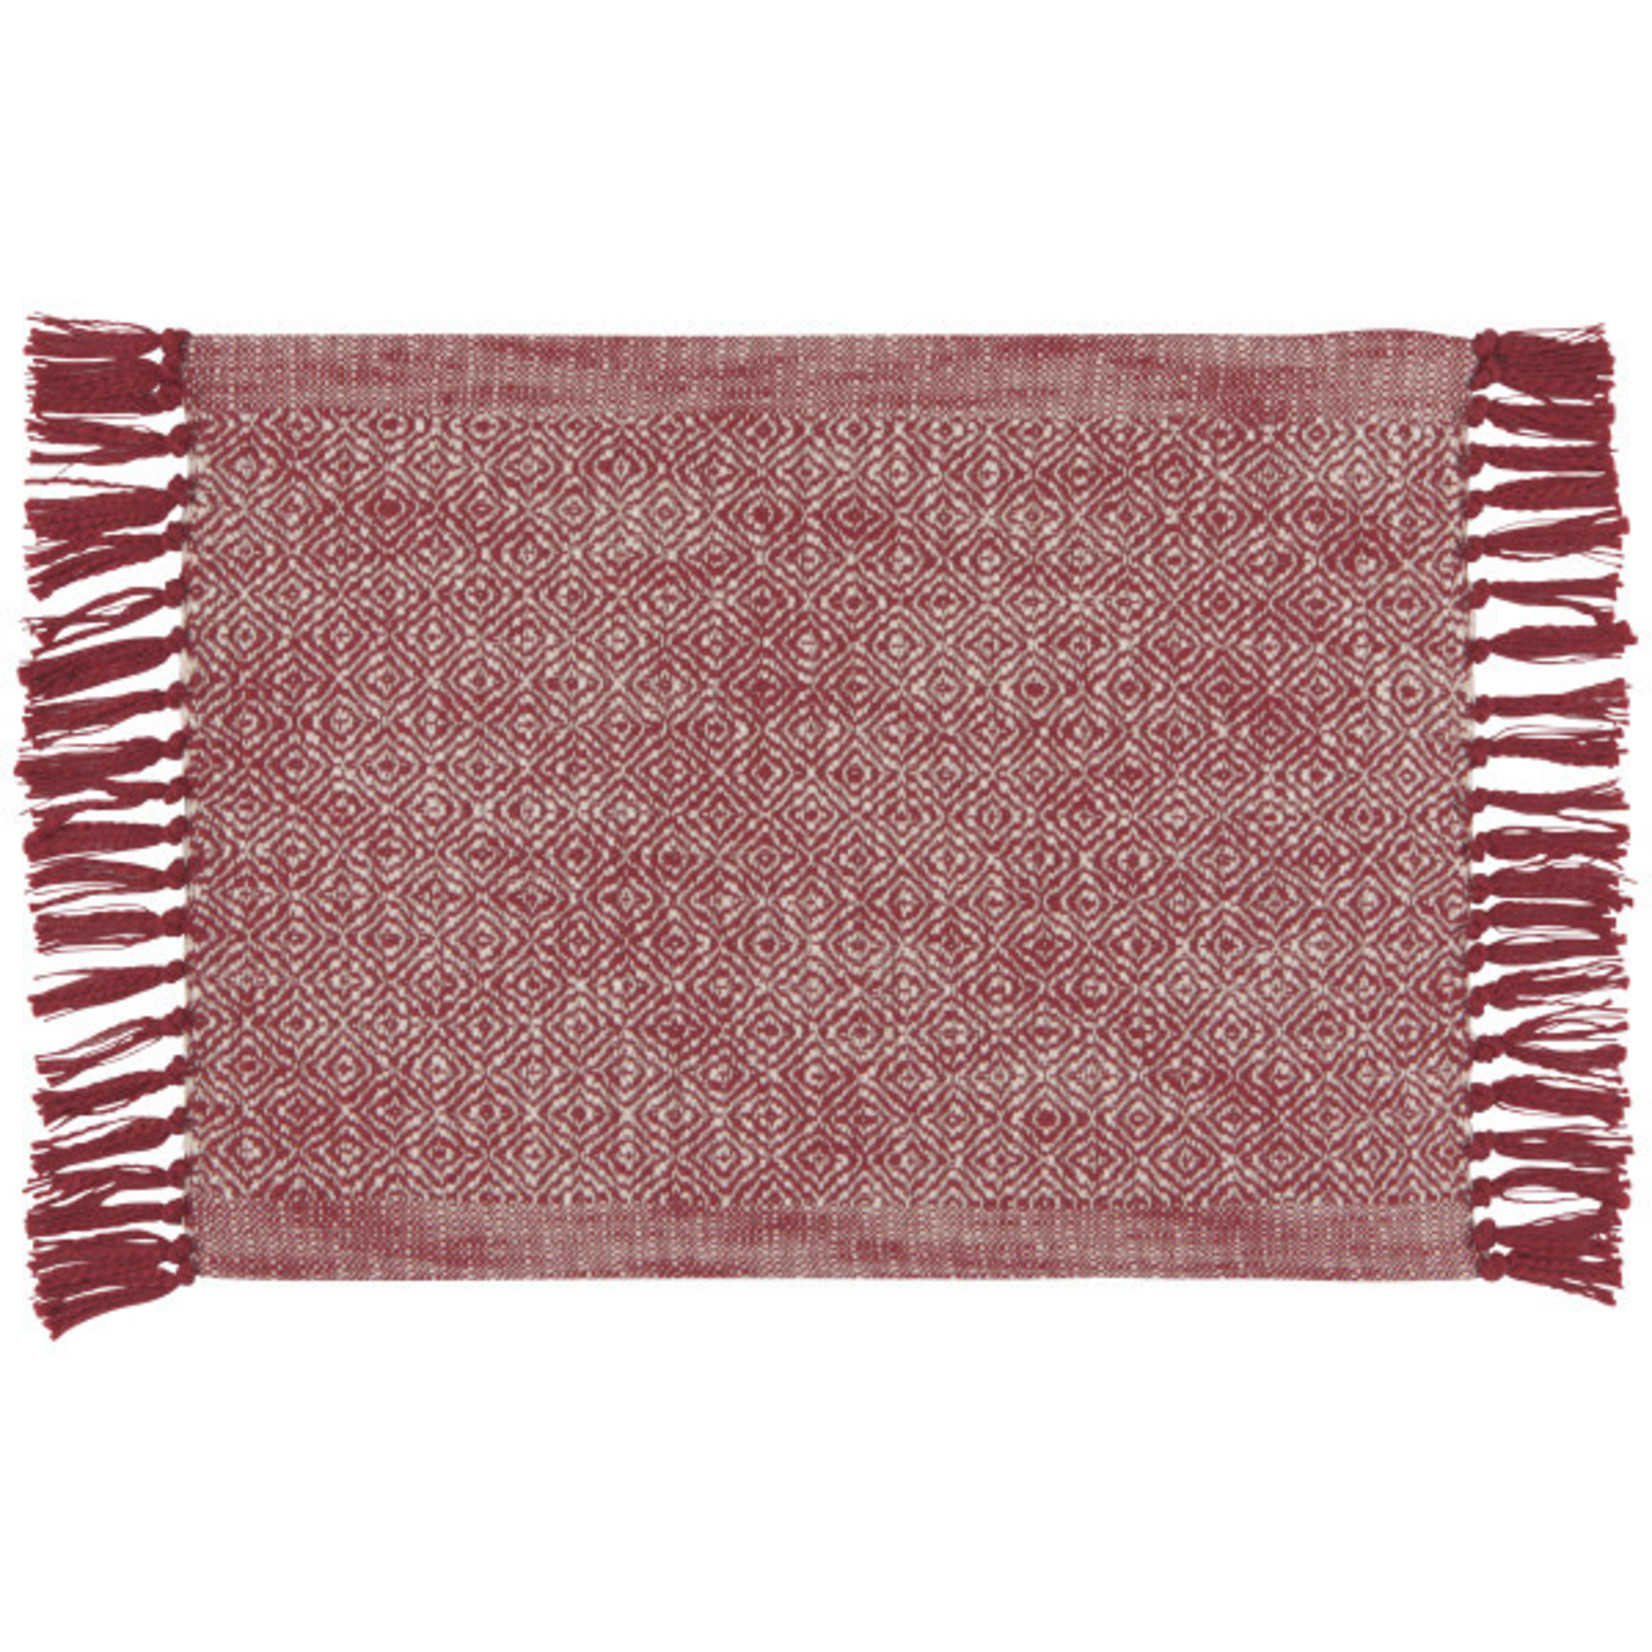 Heirloom Hearthside Placemat